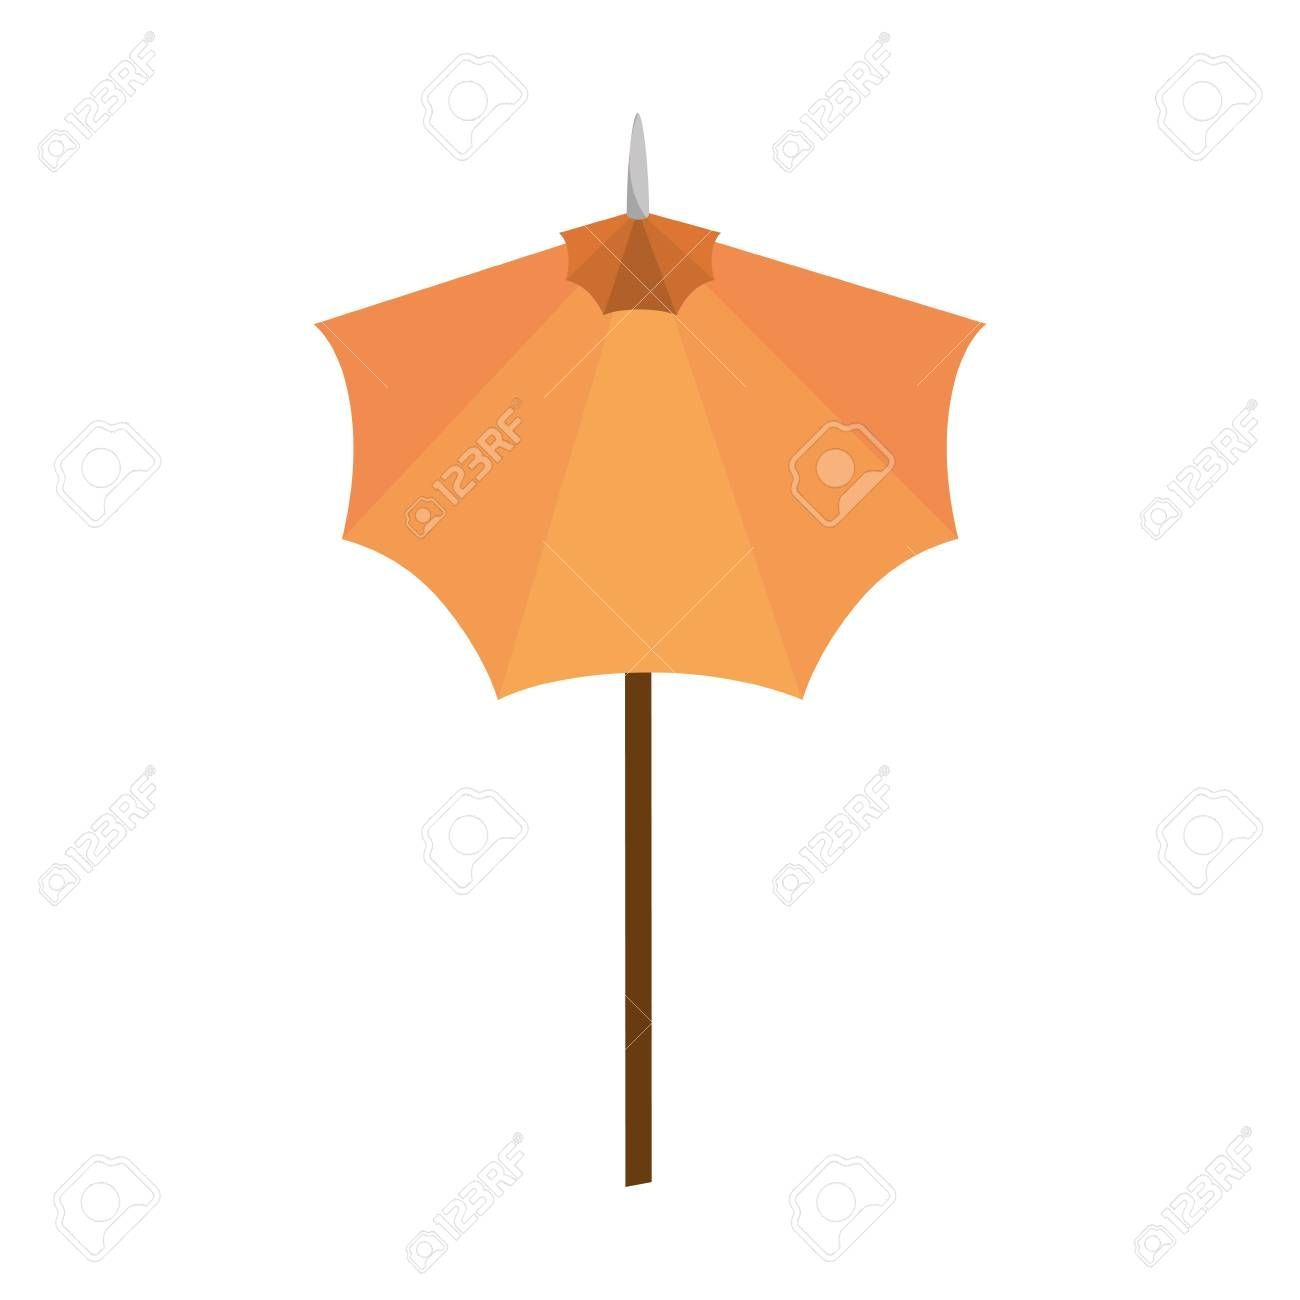 isolated cute umbrella icon vector graphic illustration Illustration , #SPONSORED, #umbrella, #icon, #isolated, #cute, #illustration #cuteumbrellas isolated cute umbrella icon vector graphic illustration Illustration , #SPONSORED, #umbrella, #icon, #isolated, #cute, #illustration #cuteumbrellas